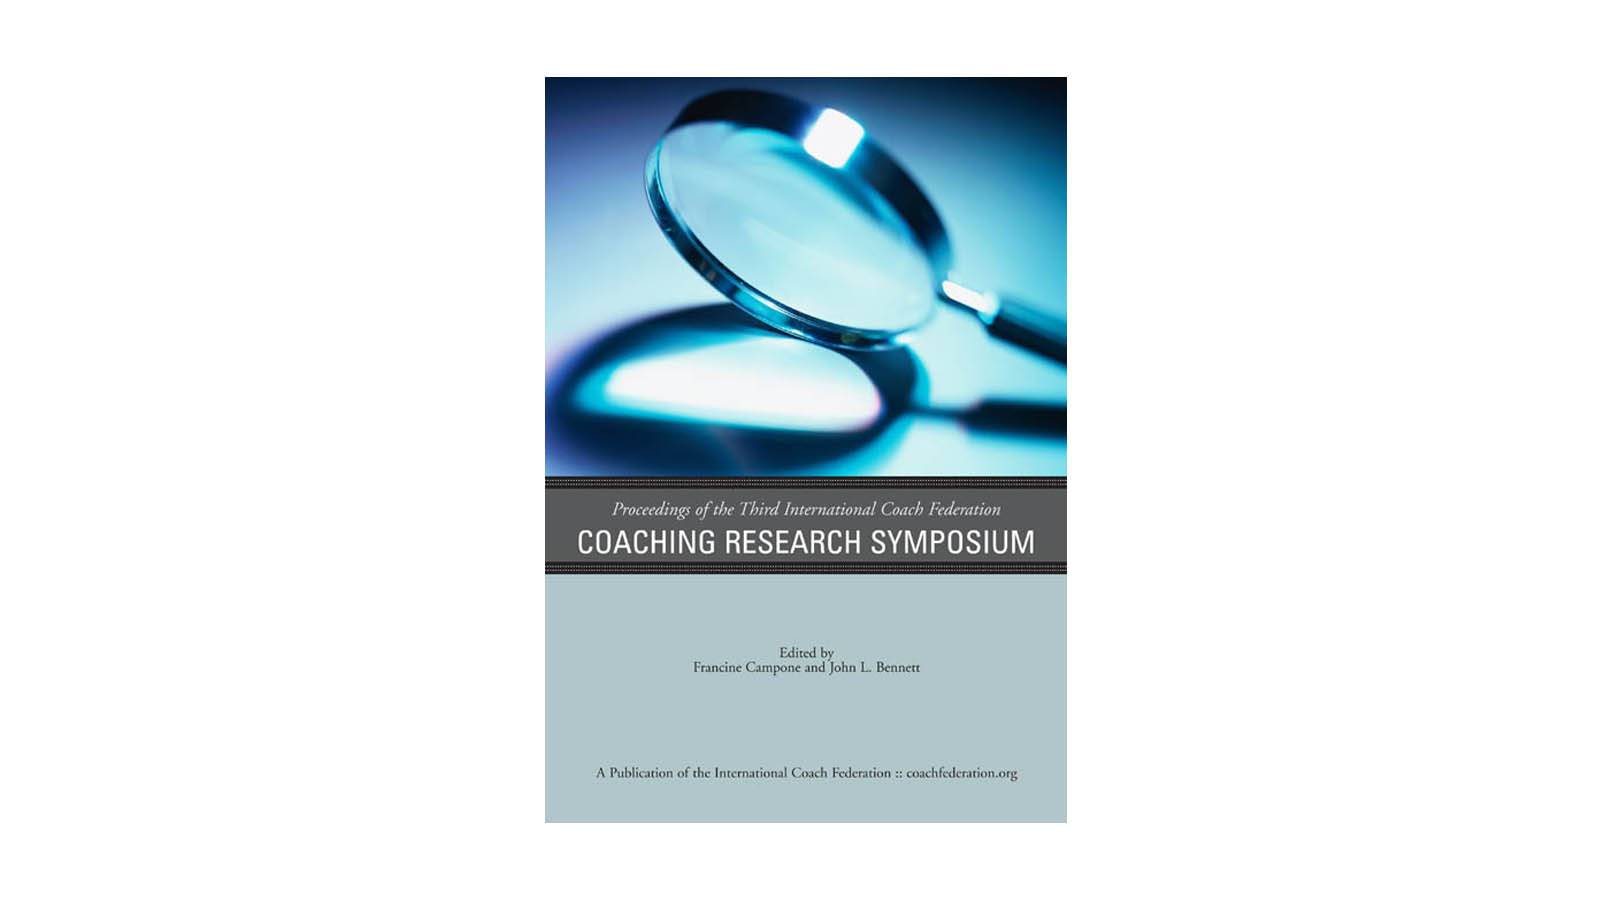 ICF Coaching Research Symposium